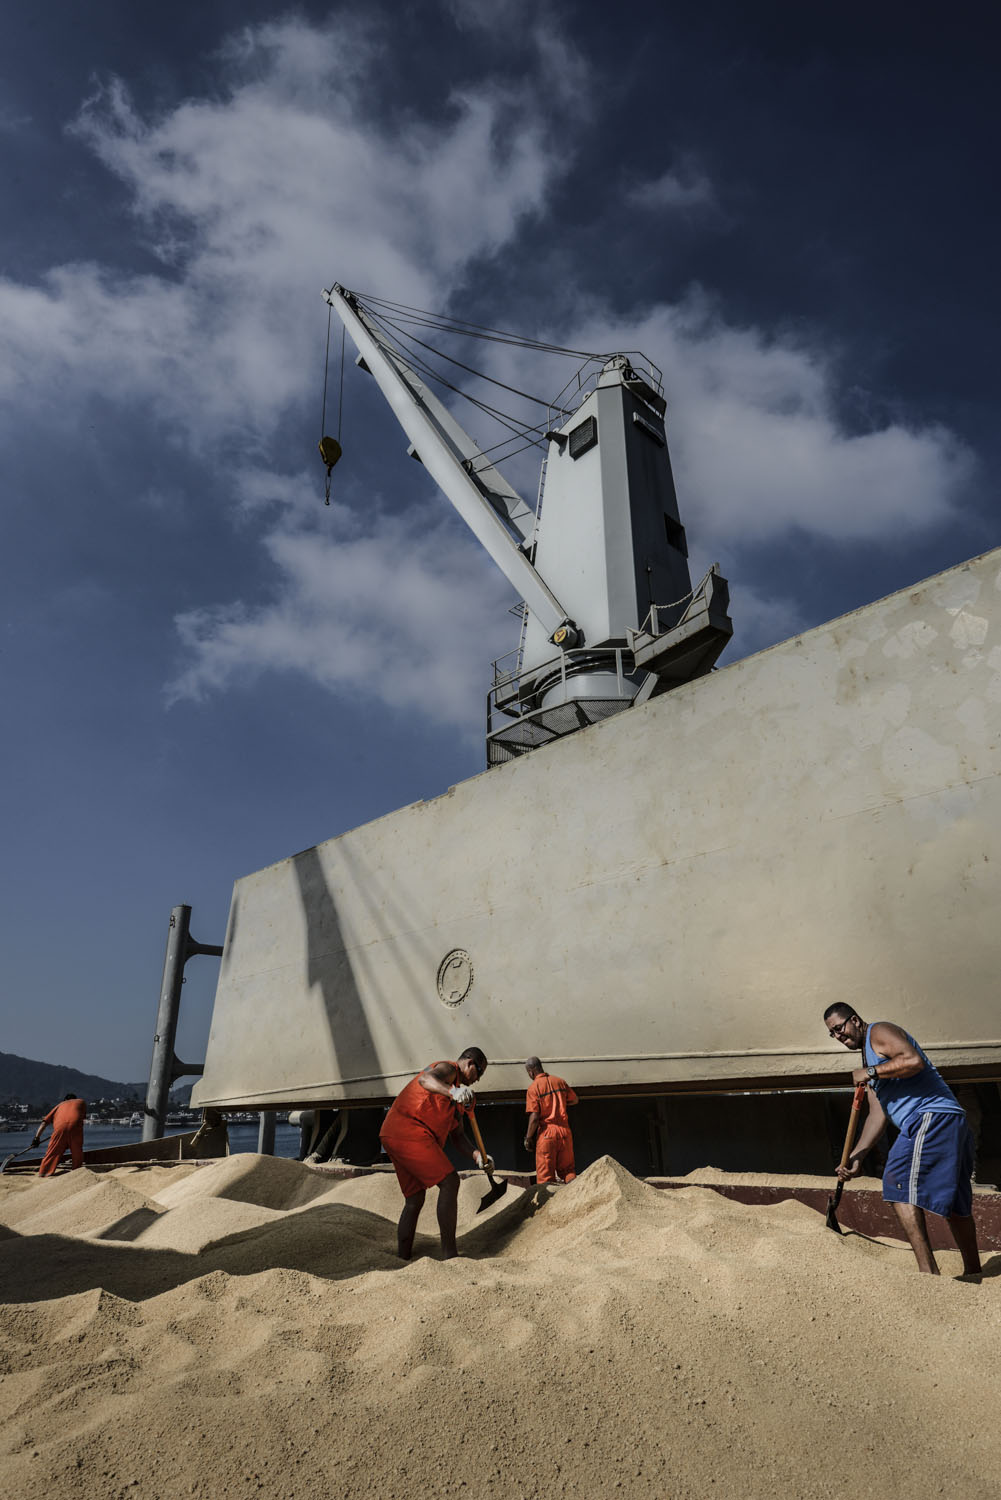 Soybeans are loaded to be exported, Santos Port, Brazil. Bloomberg USA.